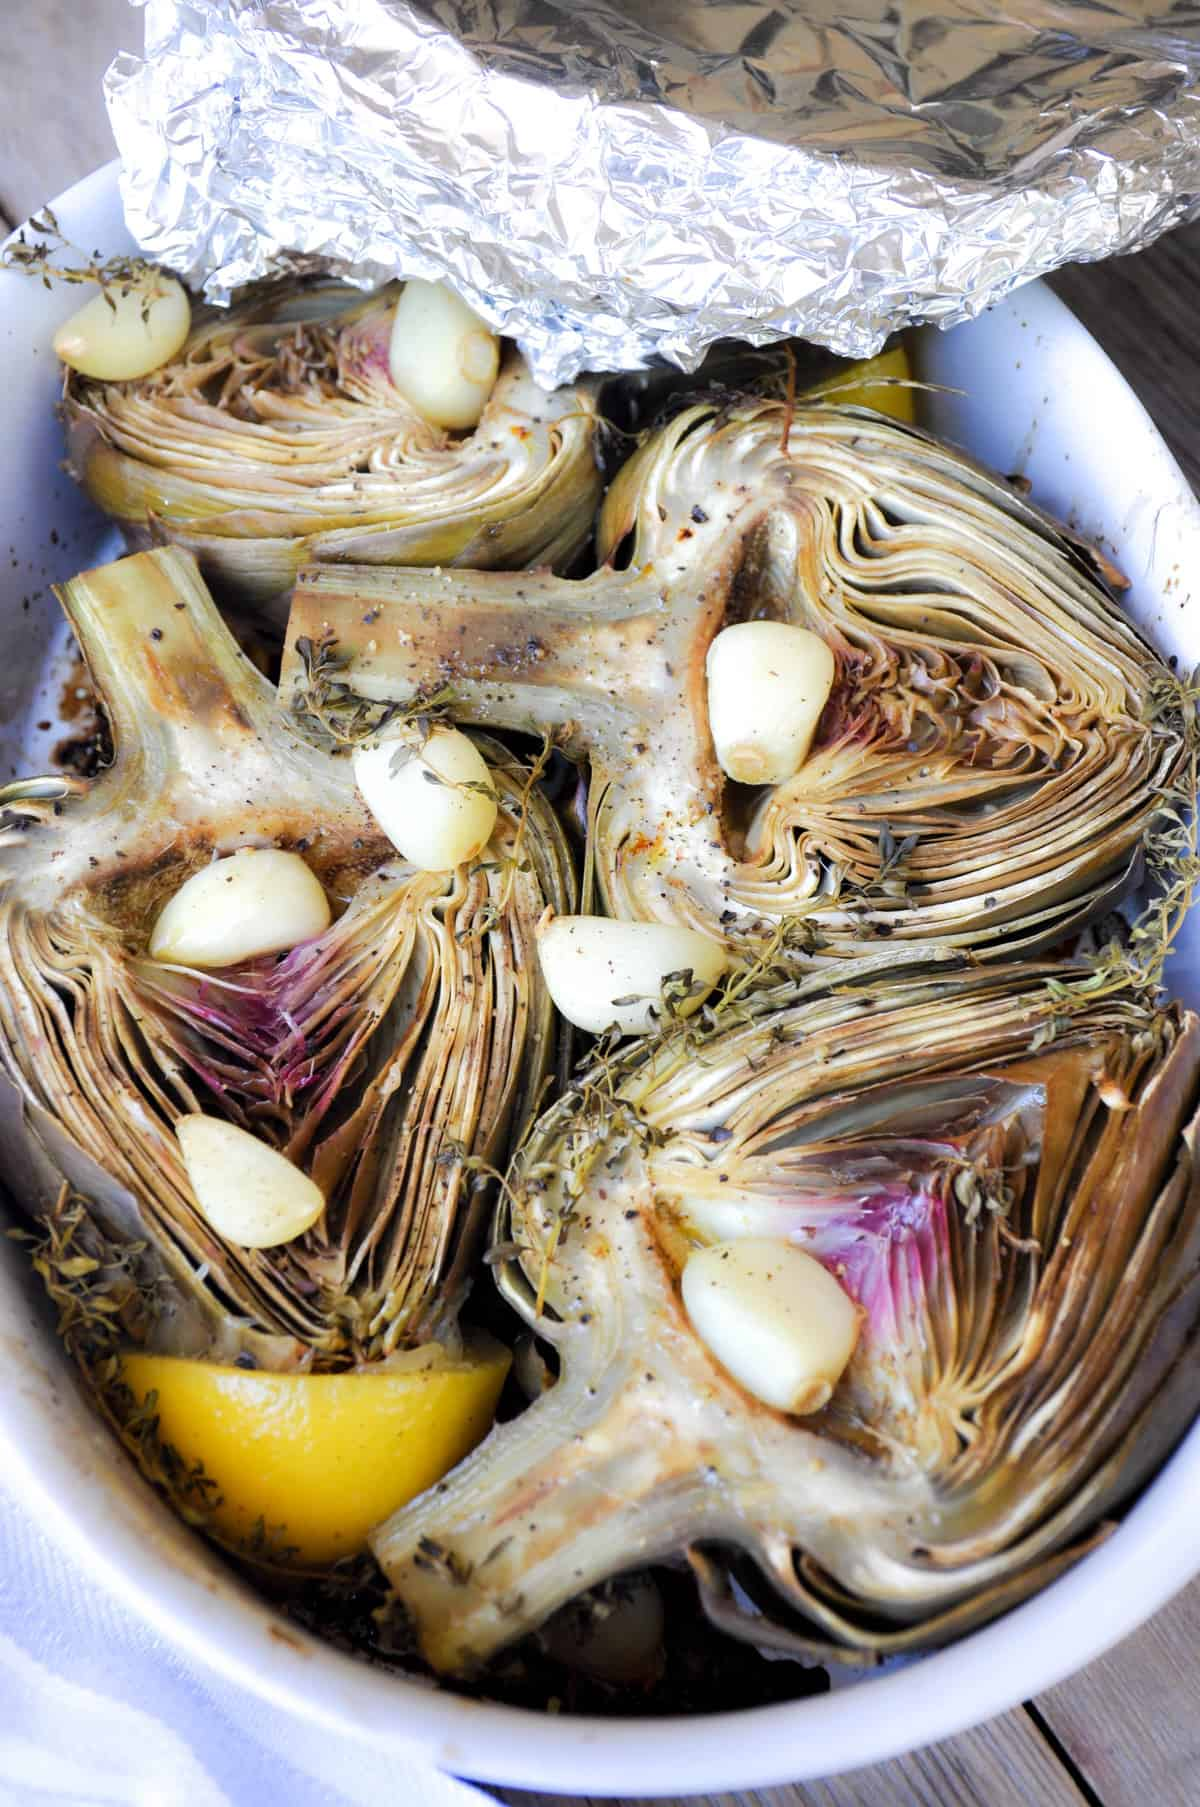 Bake artichokes with foil over dish pan